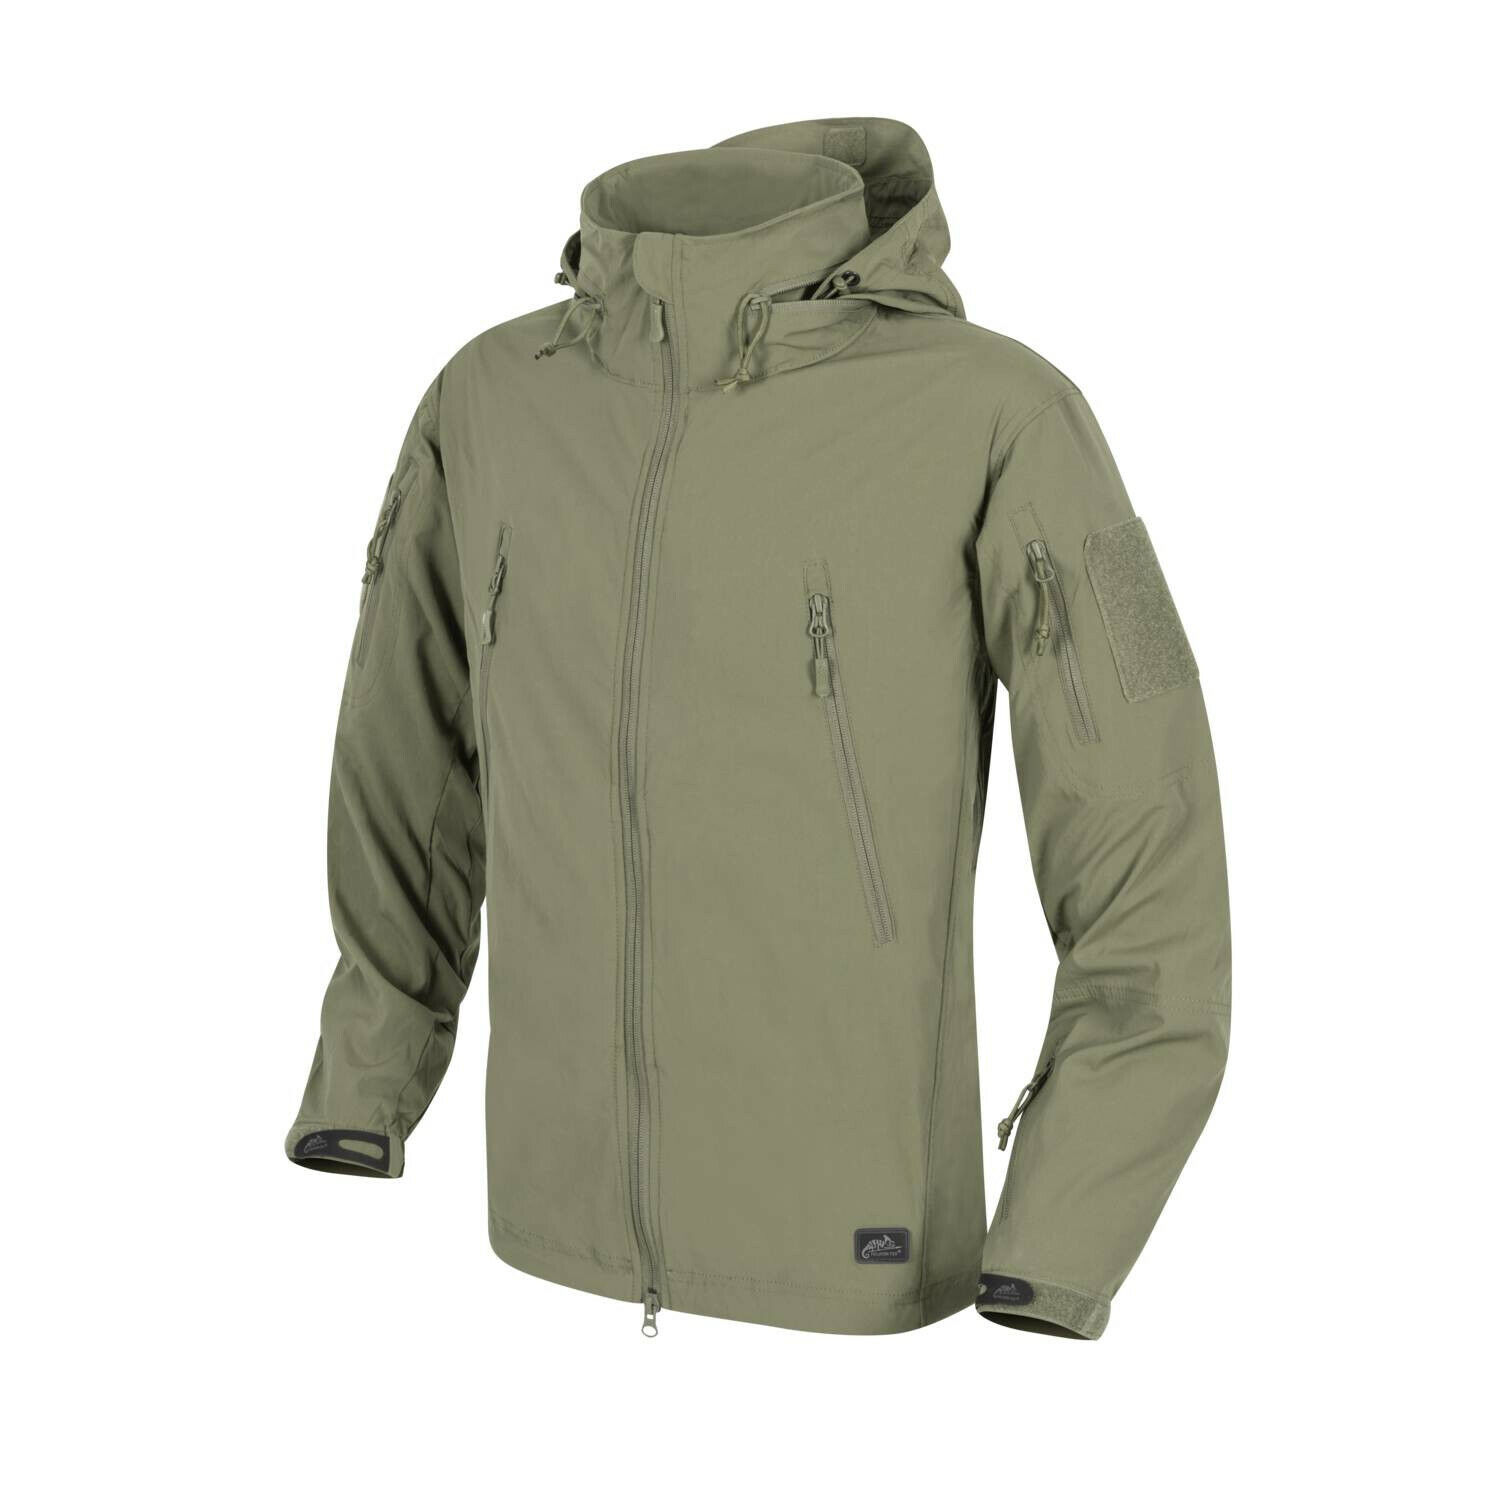 Helikon Tex Trooper Jacket Stormstretch Outdoor Tempo Libero Softshell Giacca